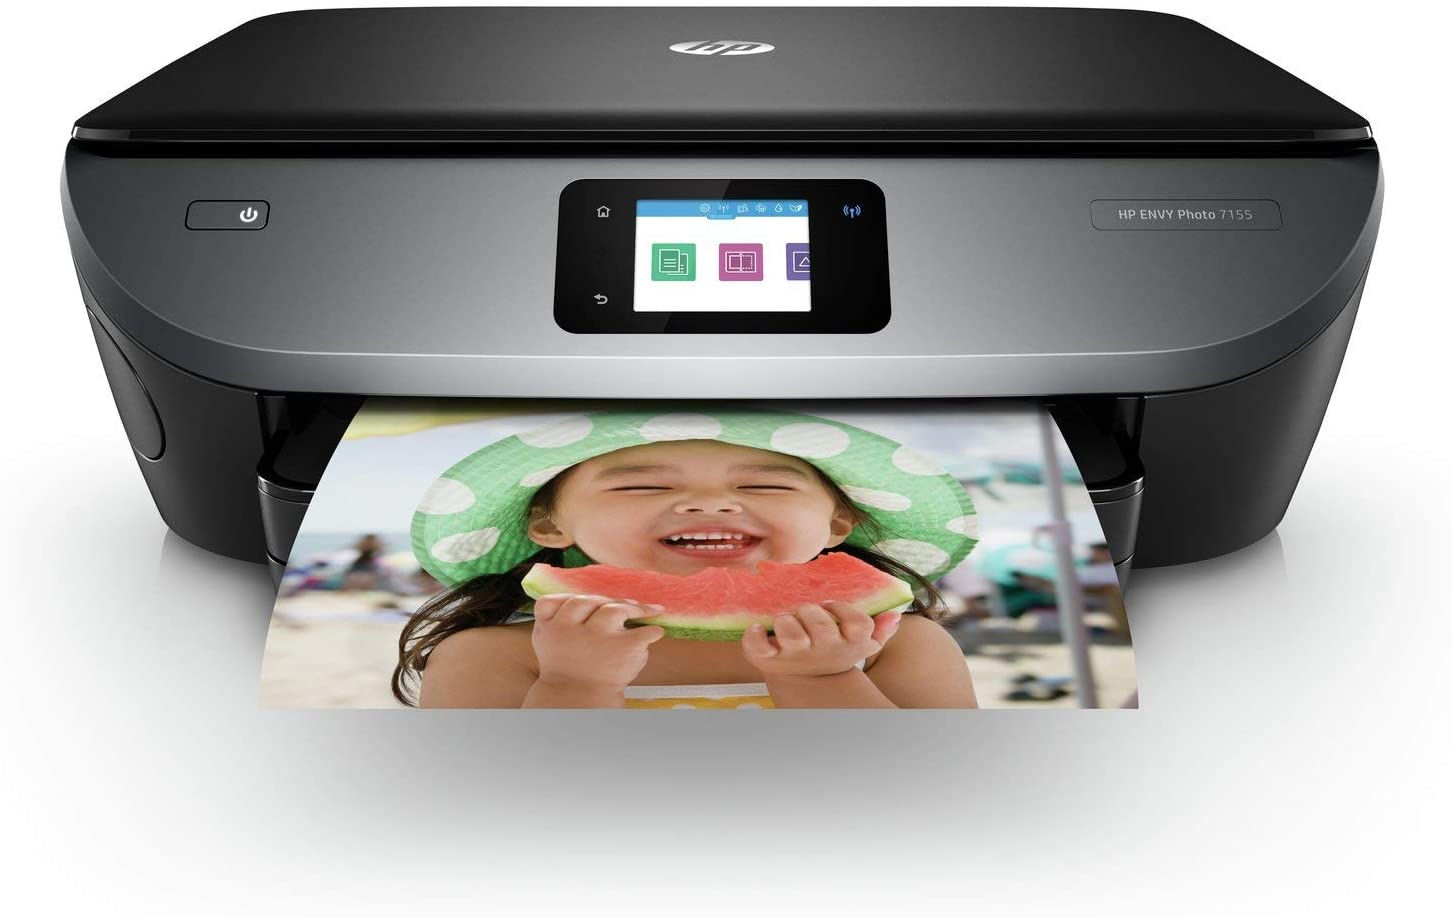 HP Envy Photo 7155 All-in-One Photo Printer